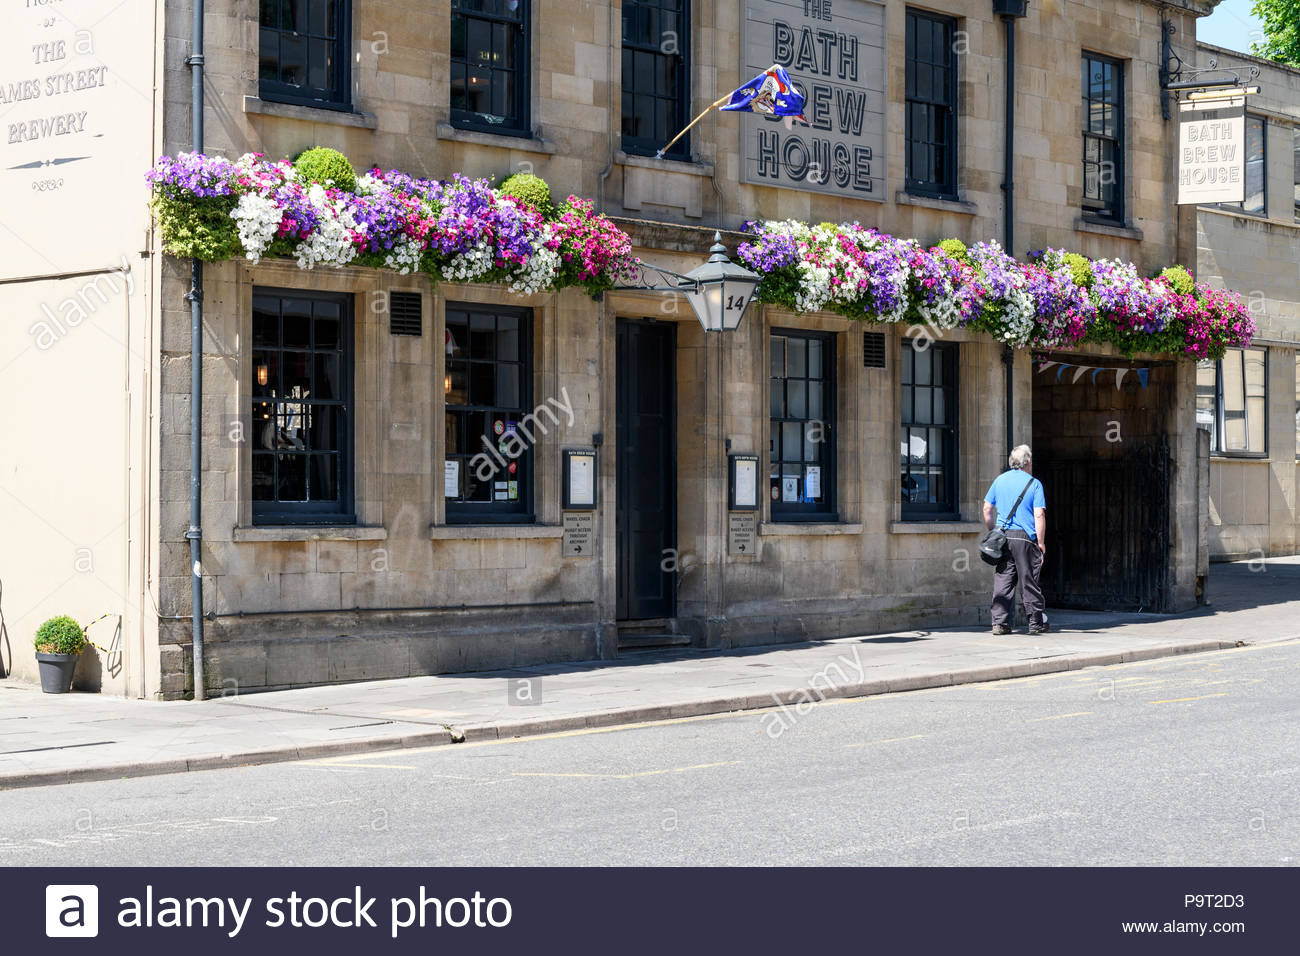 The Bath Brew House, Bath, Somerset, England, UK - Stock Image